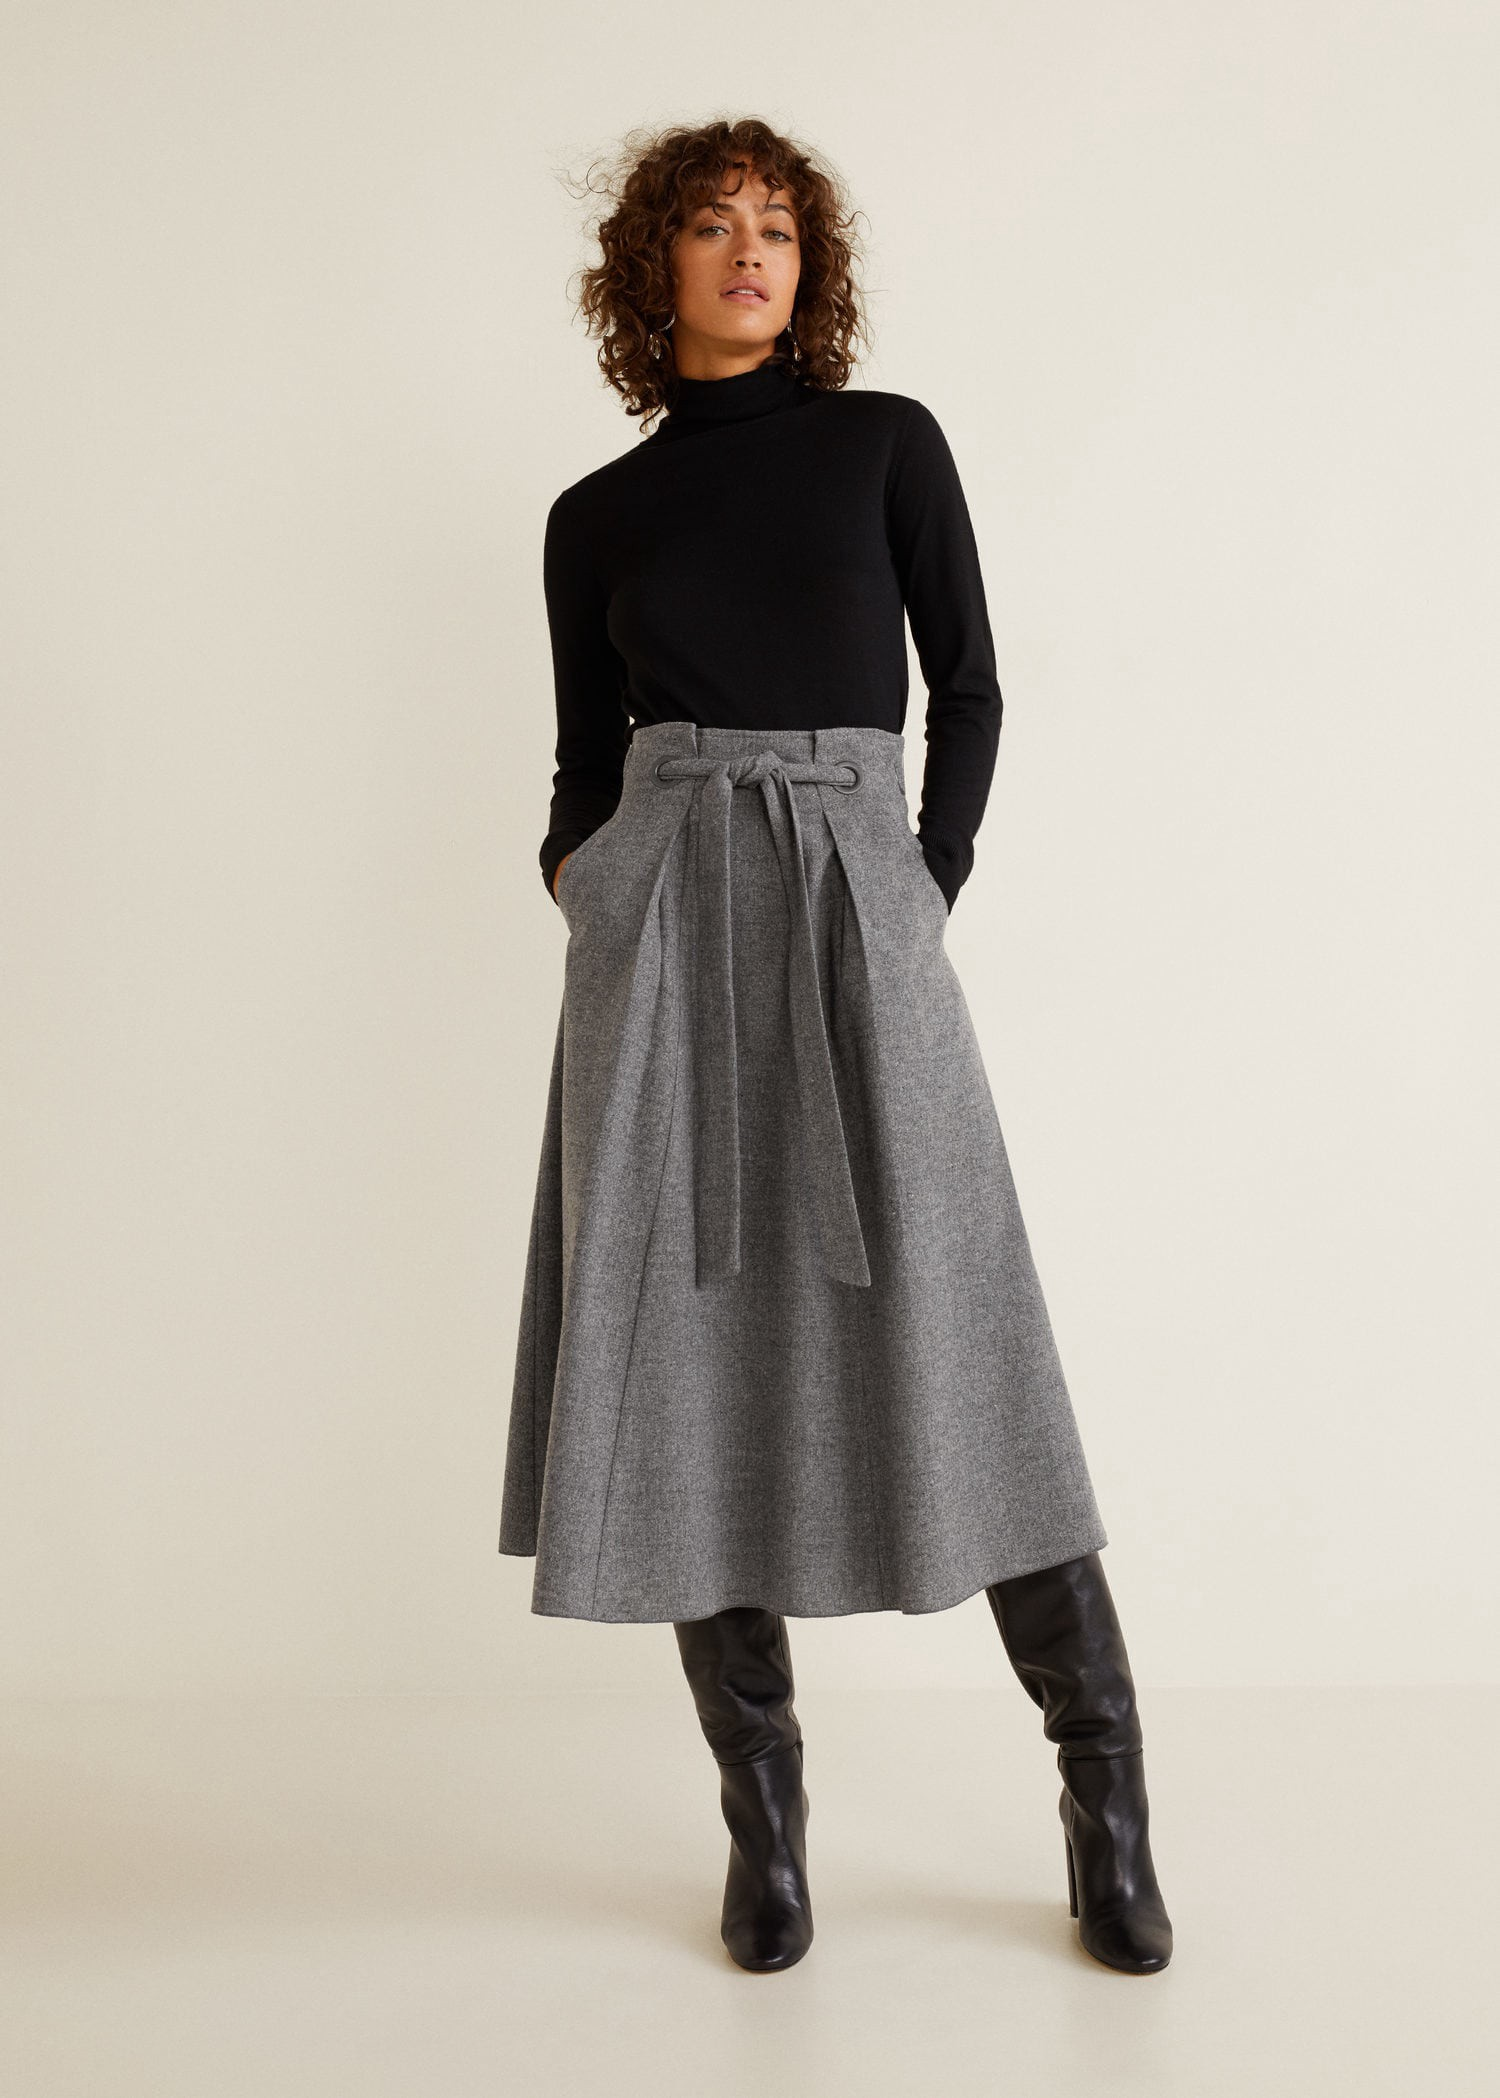 056dabd20a Mango Flared Long Skirt - XS in 2019 | Products | Winter skirt ...